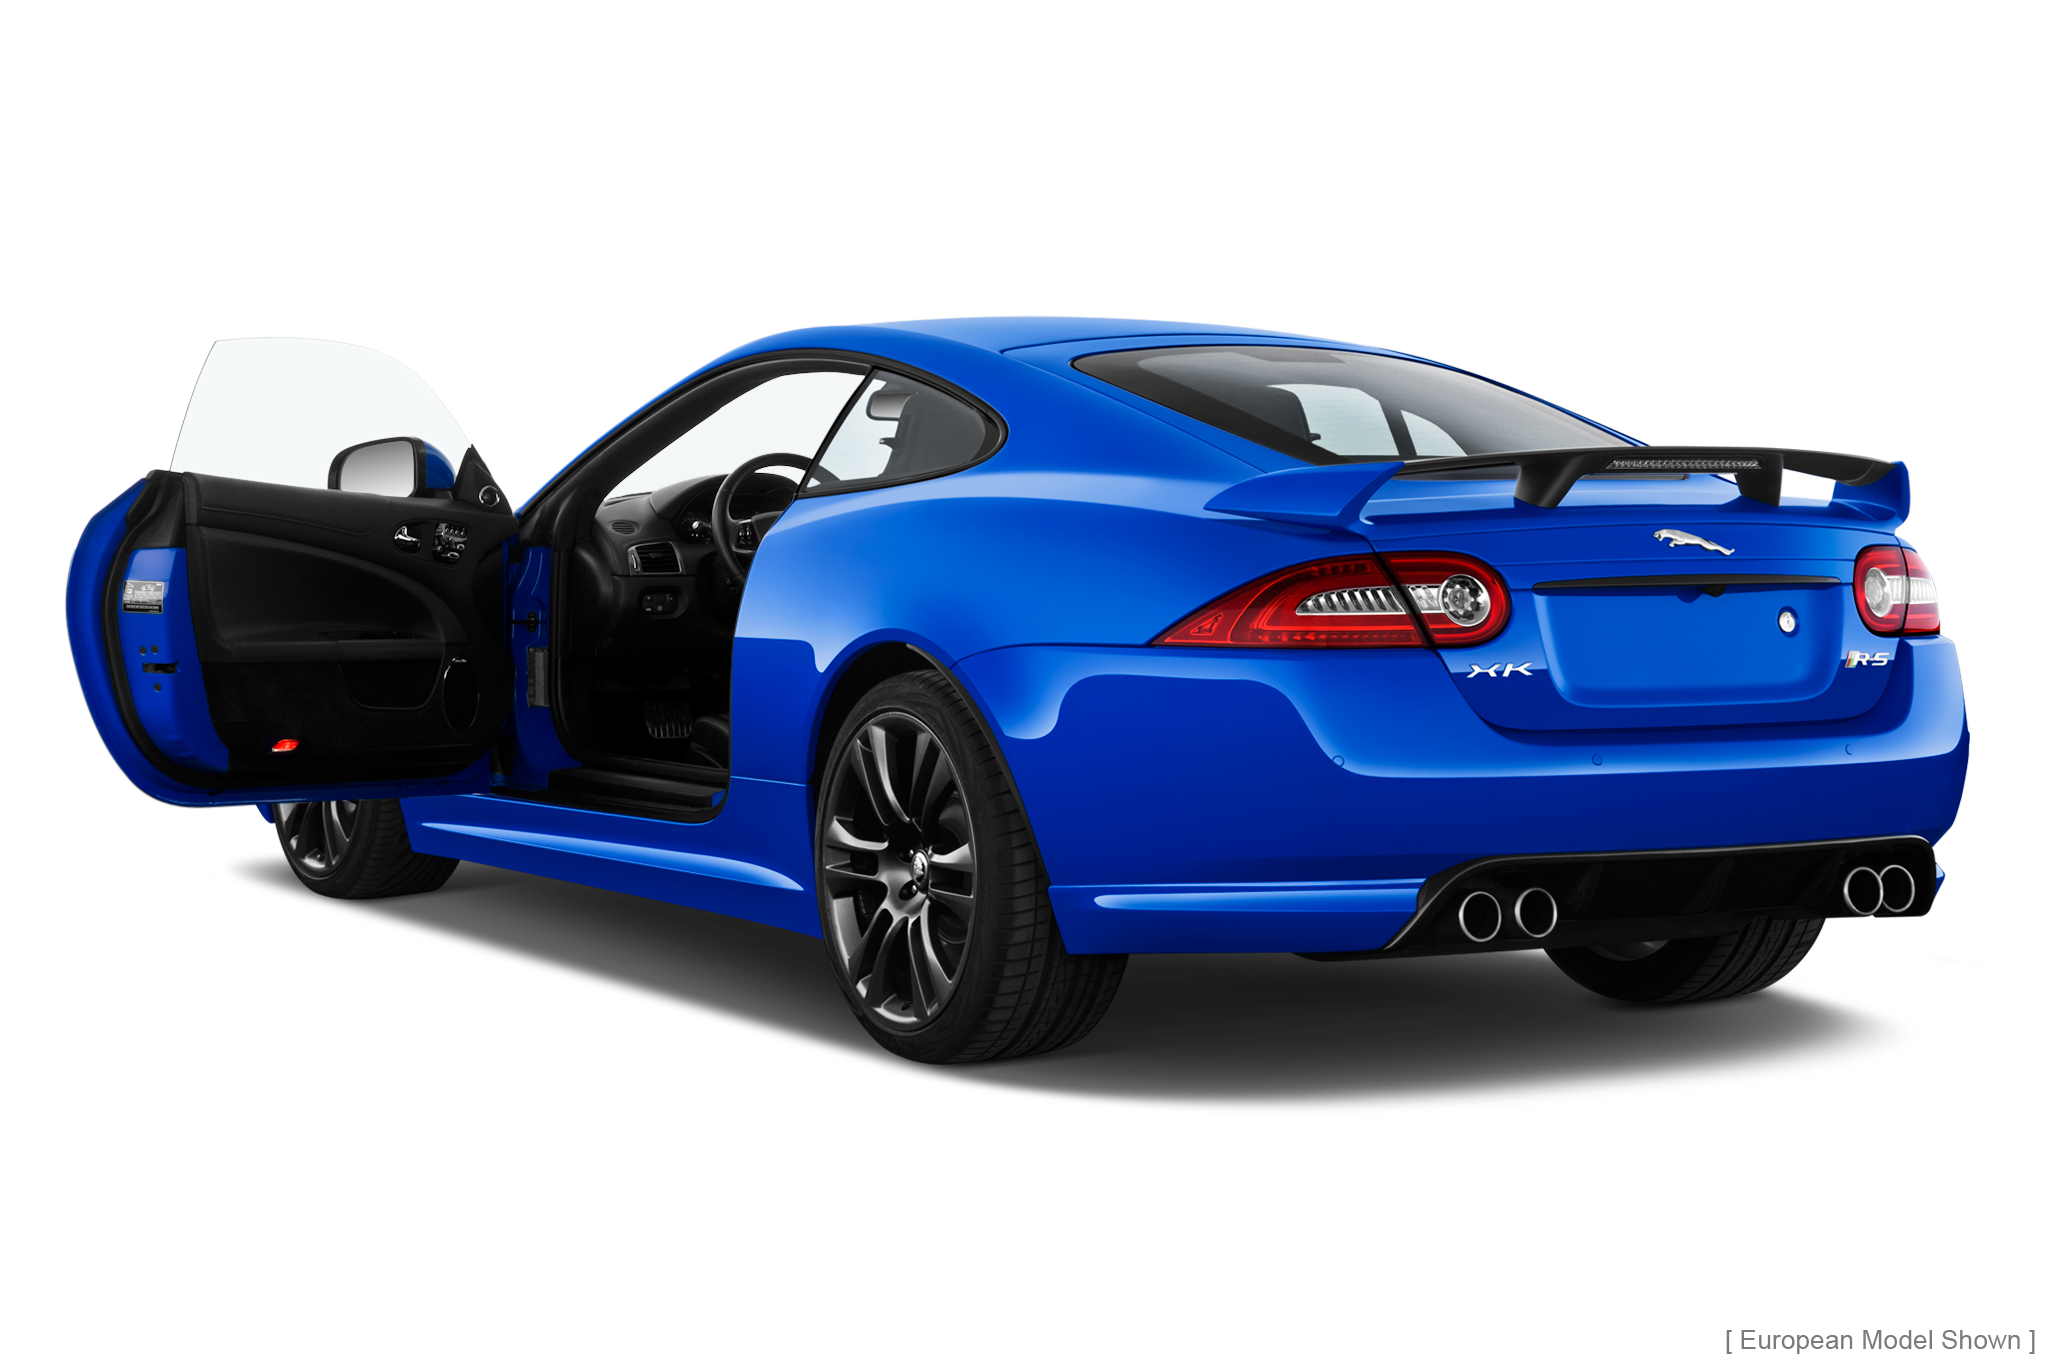 updated ftype lineup announced news cars jaguar pricing convertible priced rear